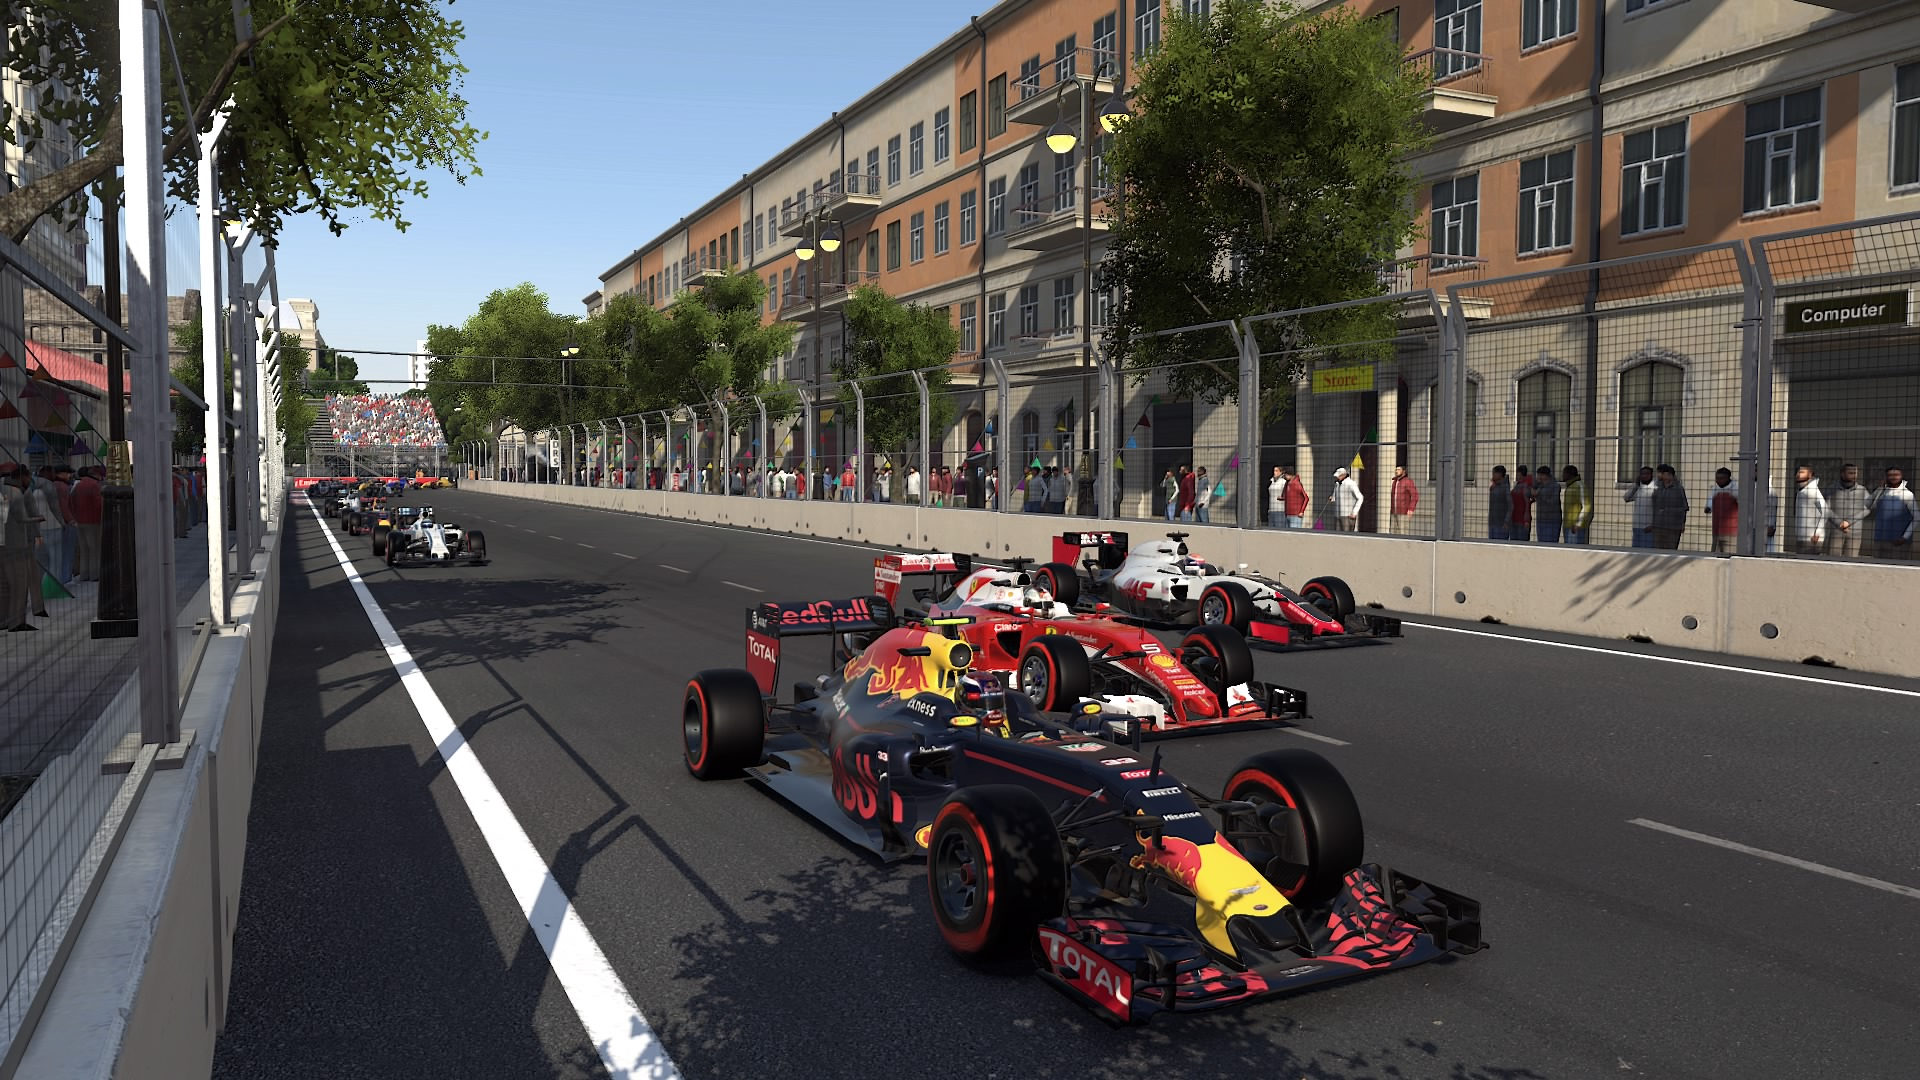 f1 2016 by codemasters the f1 fanatic review f1 fanatic. Black Bedroom Furniture Sets. Home Design Ideas